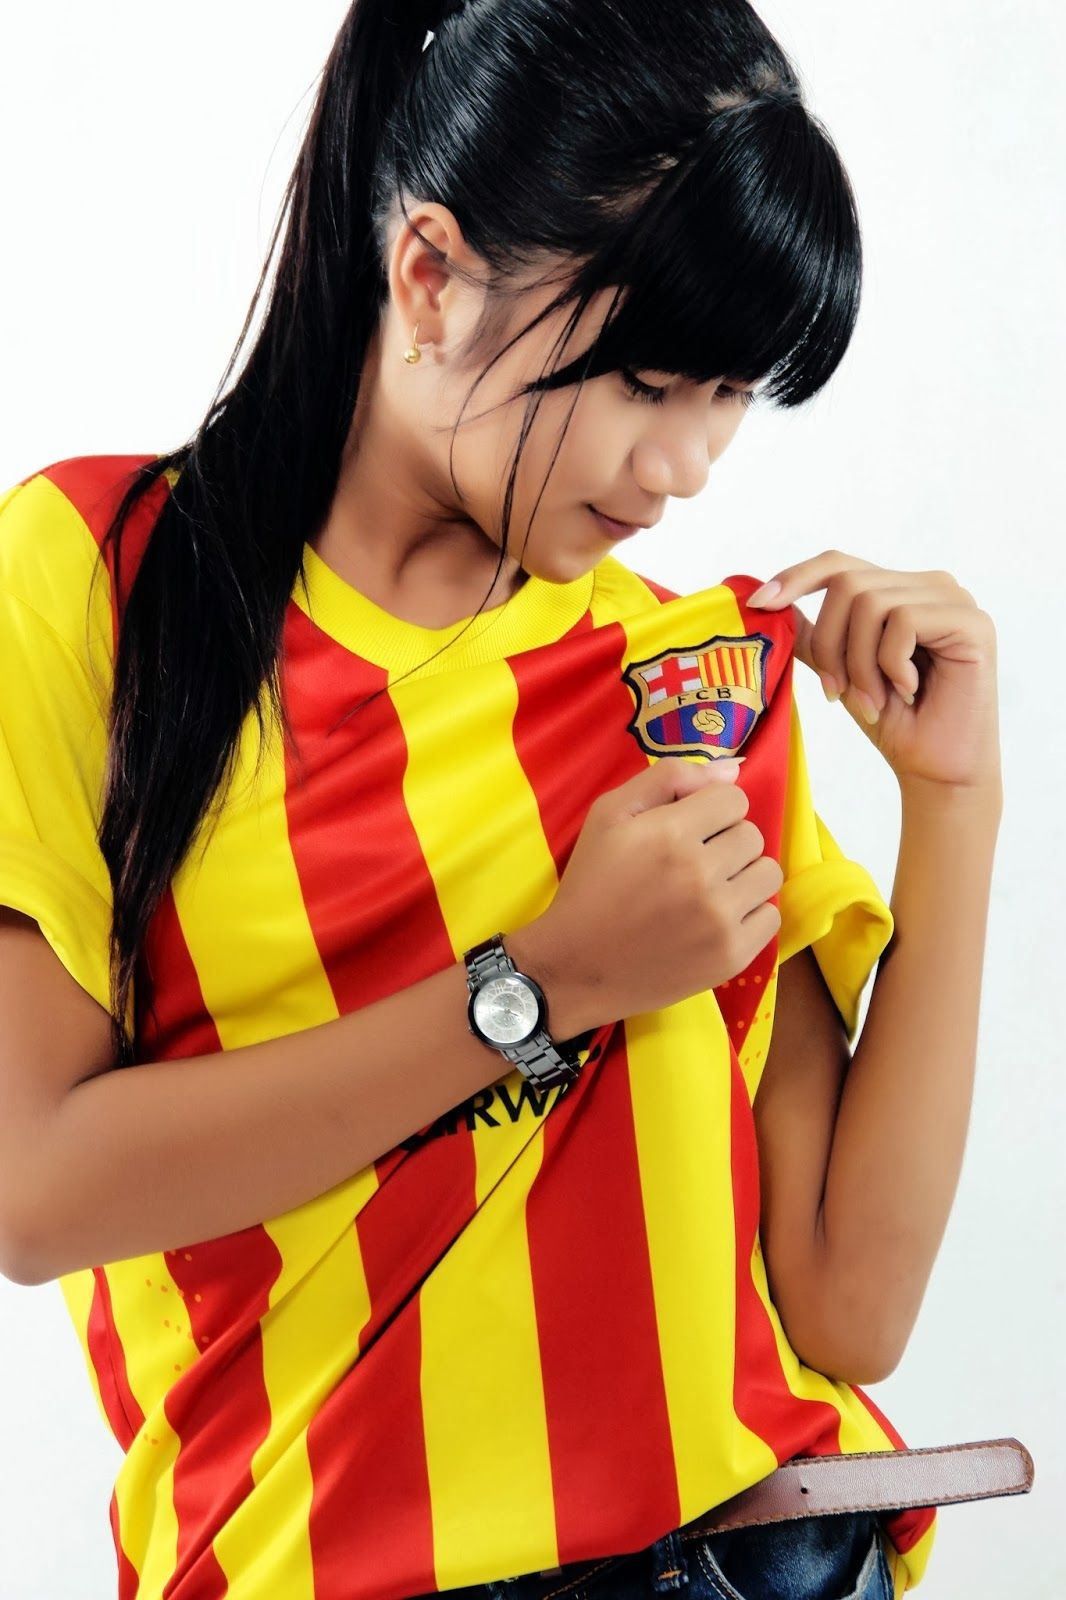 Cules Angel from Indonesia | Fc Barcelona Photo